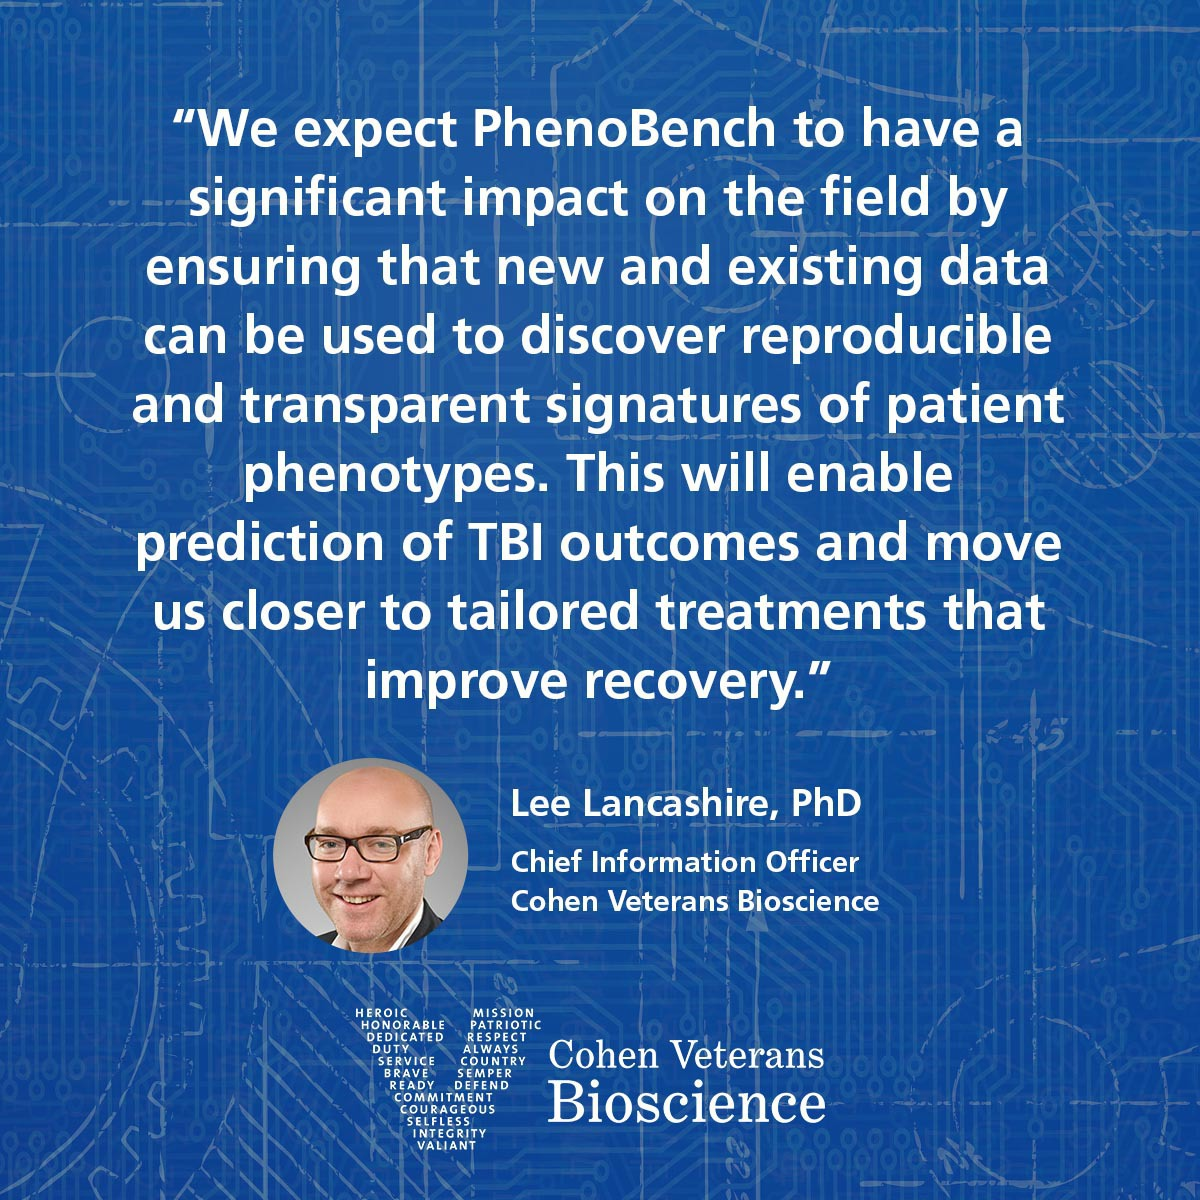 Quote from Dr. Lee Lancashire